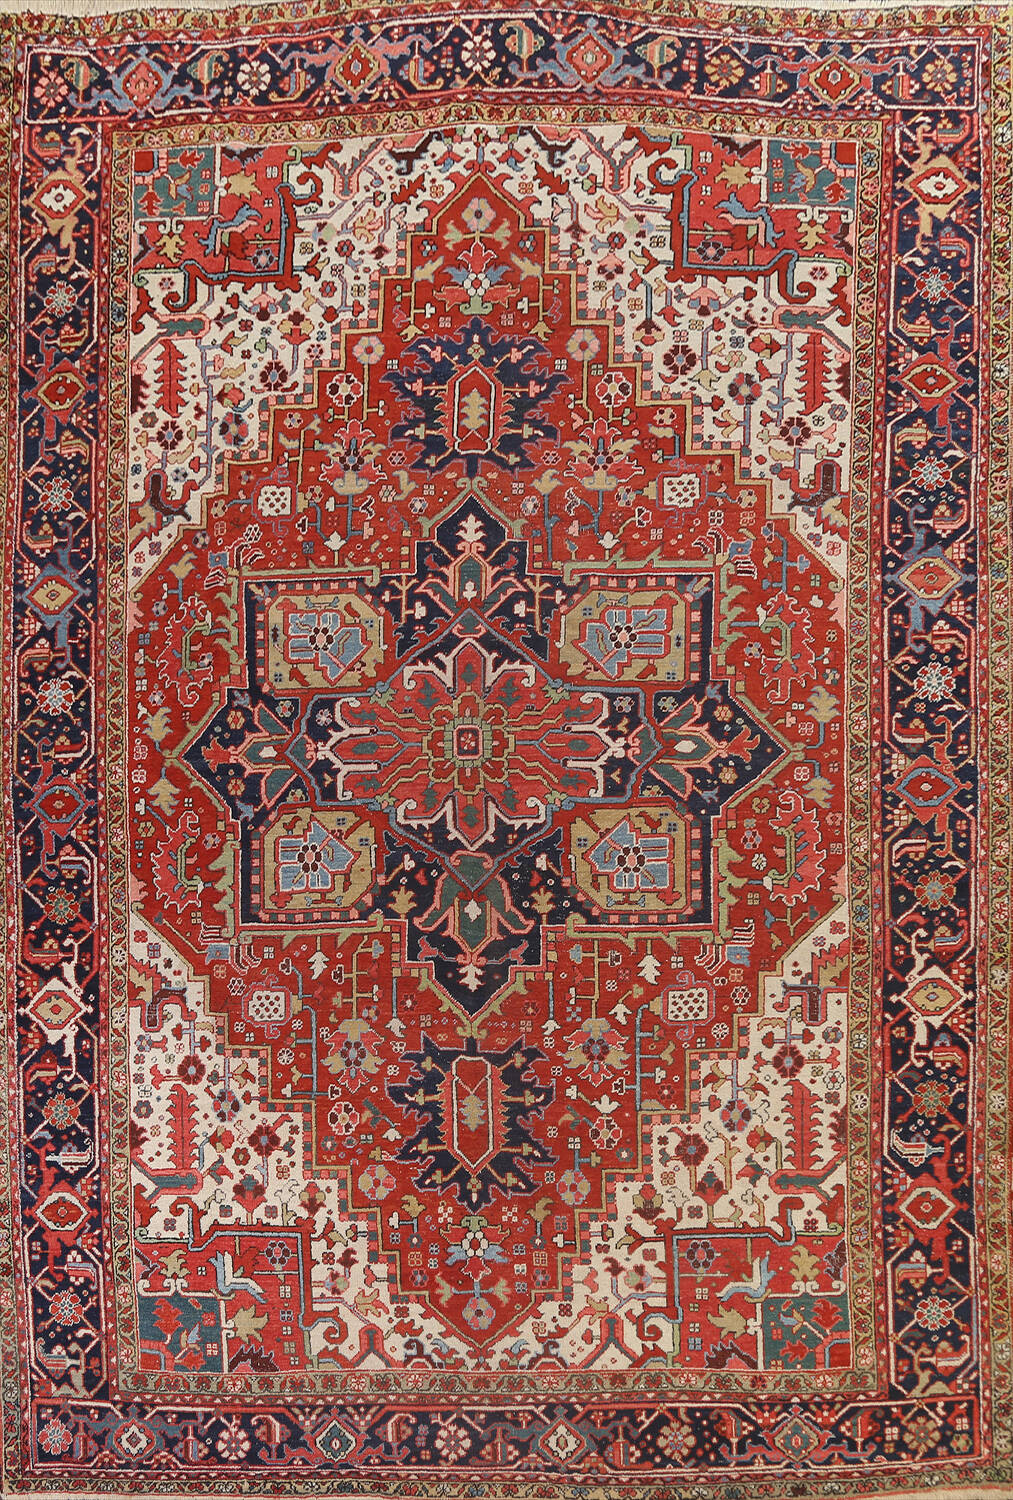 Pre-1900 Antique Vegetable Dye Heriz Serapi Persian Area Rug 10x13 image 1